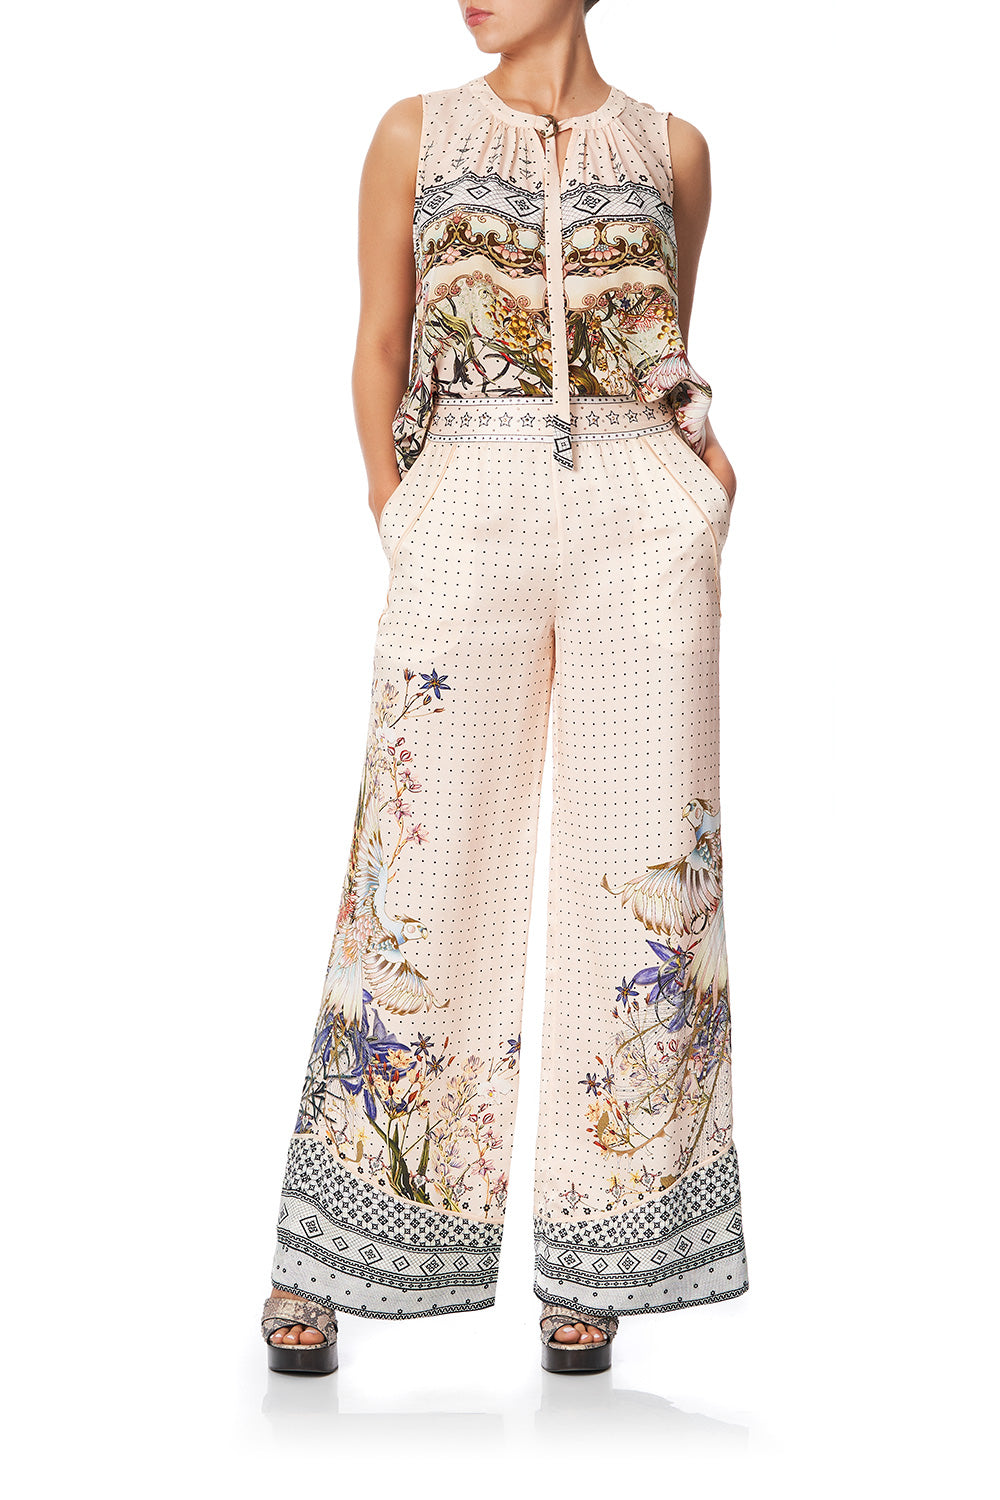 WIDE LEG PANT WITH SHAPED CUFF KINDRED SKIES